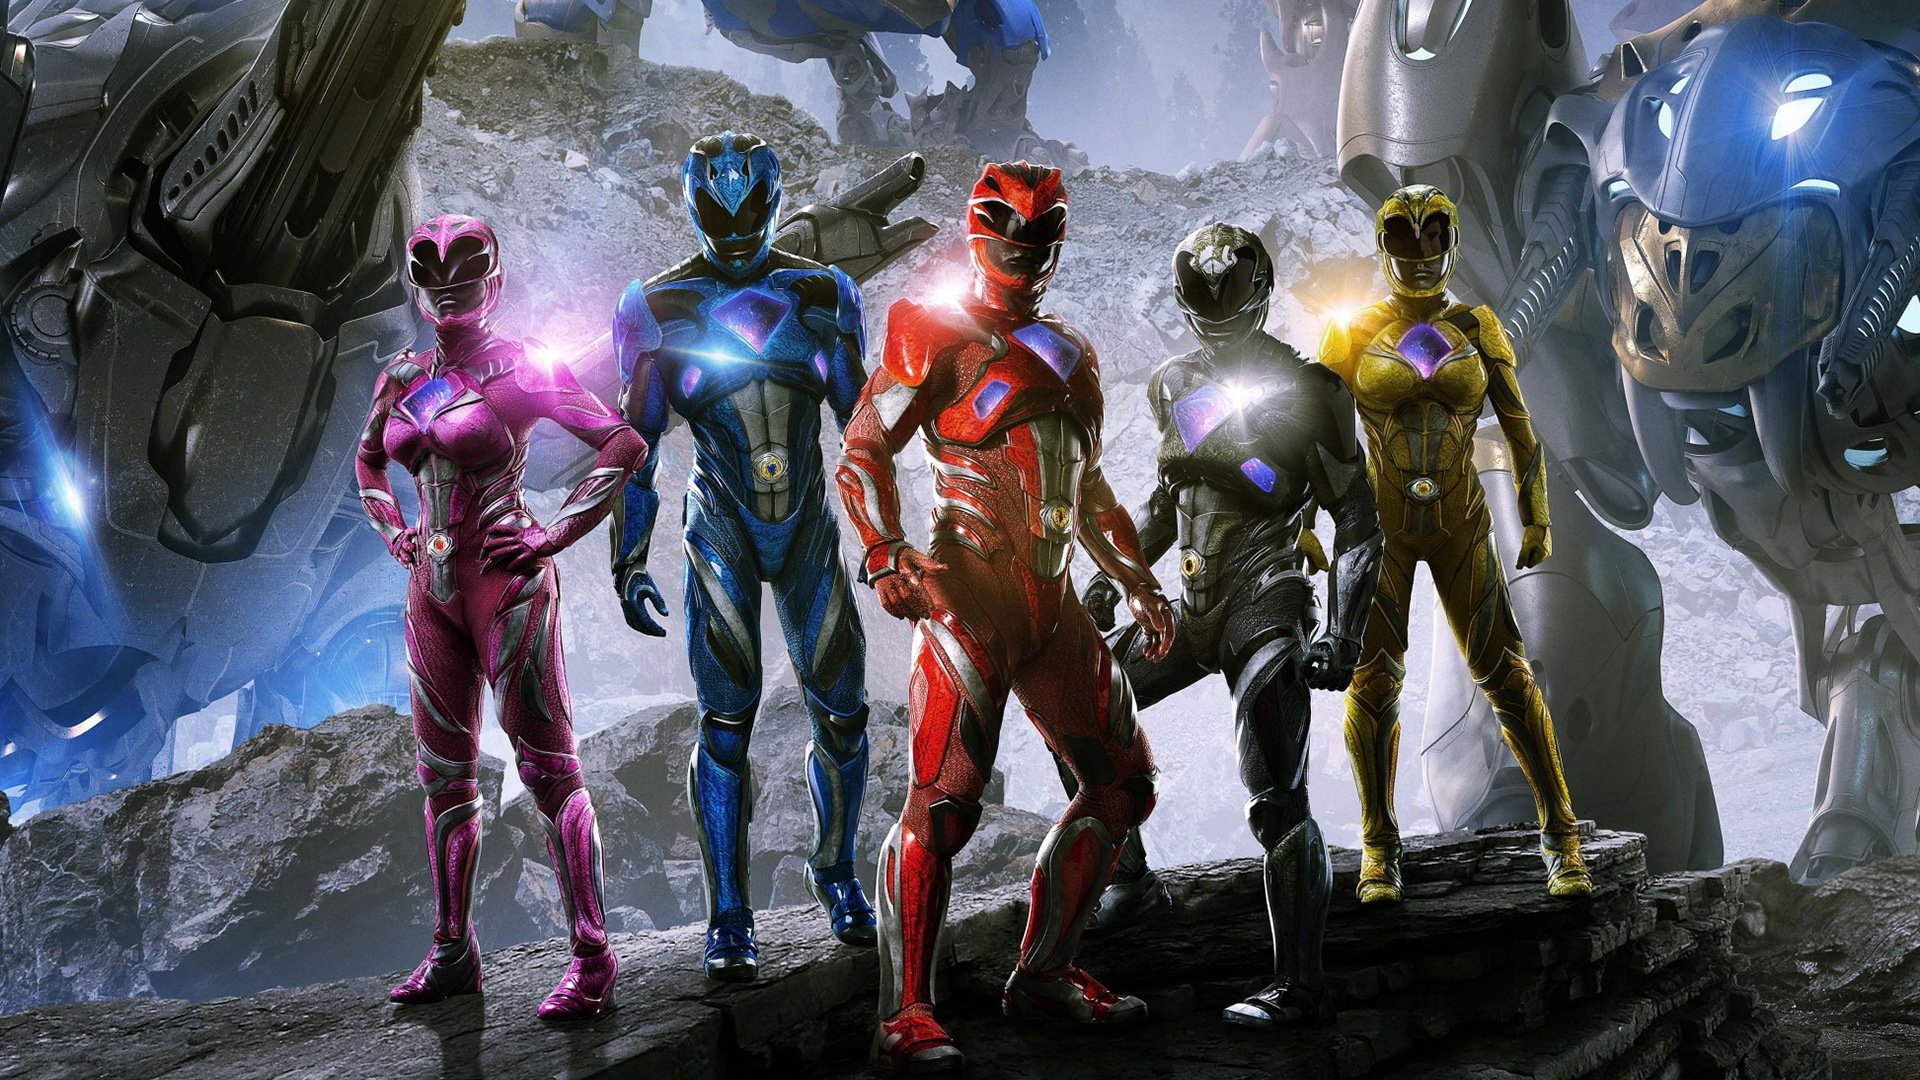 Awesome Power Rangers (2017) movie free wallpaper ID:110612 for full hd 1920x1080 PC